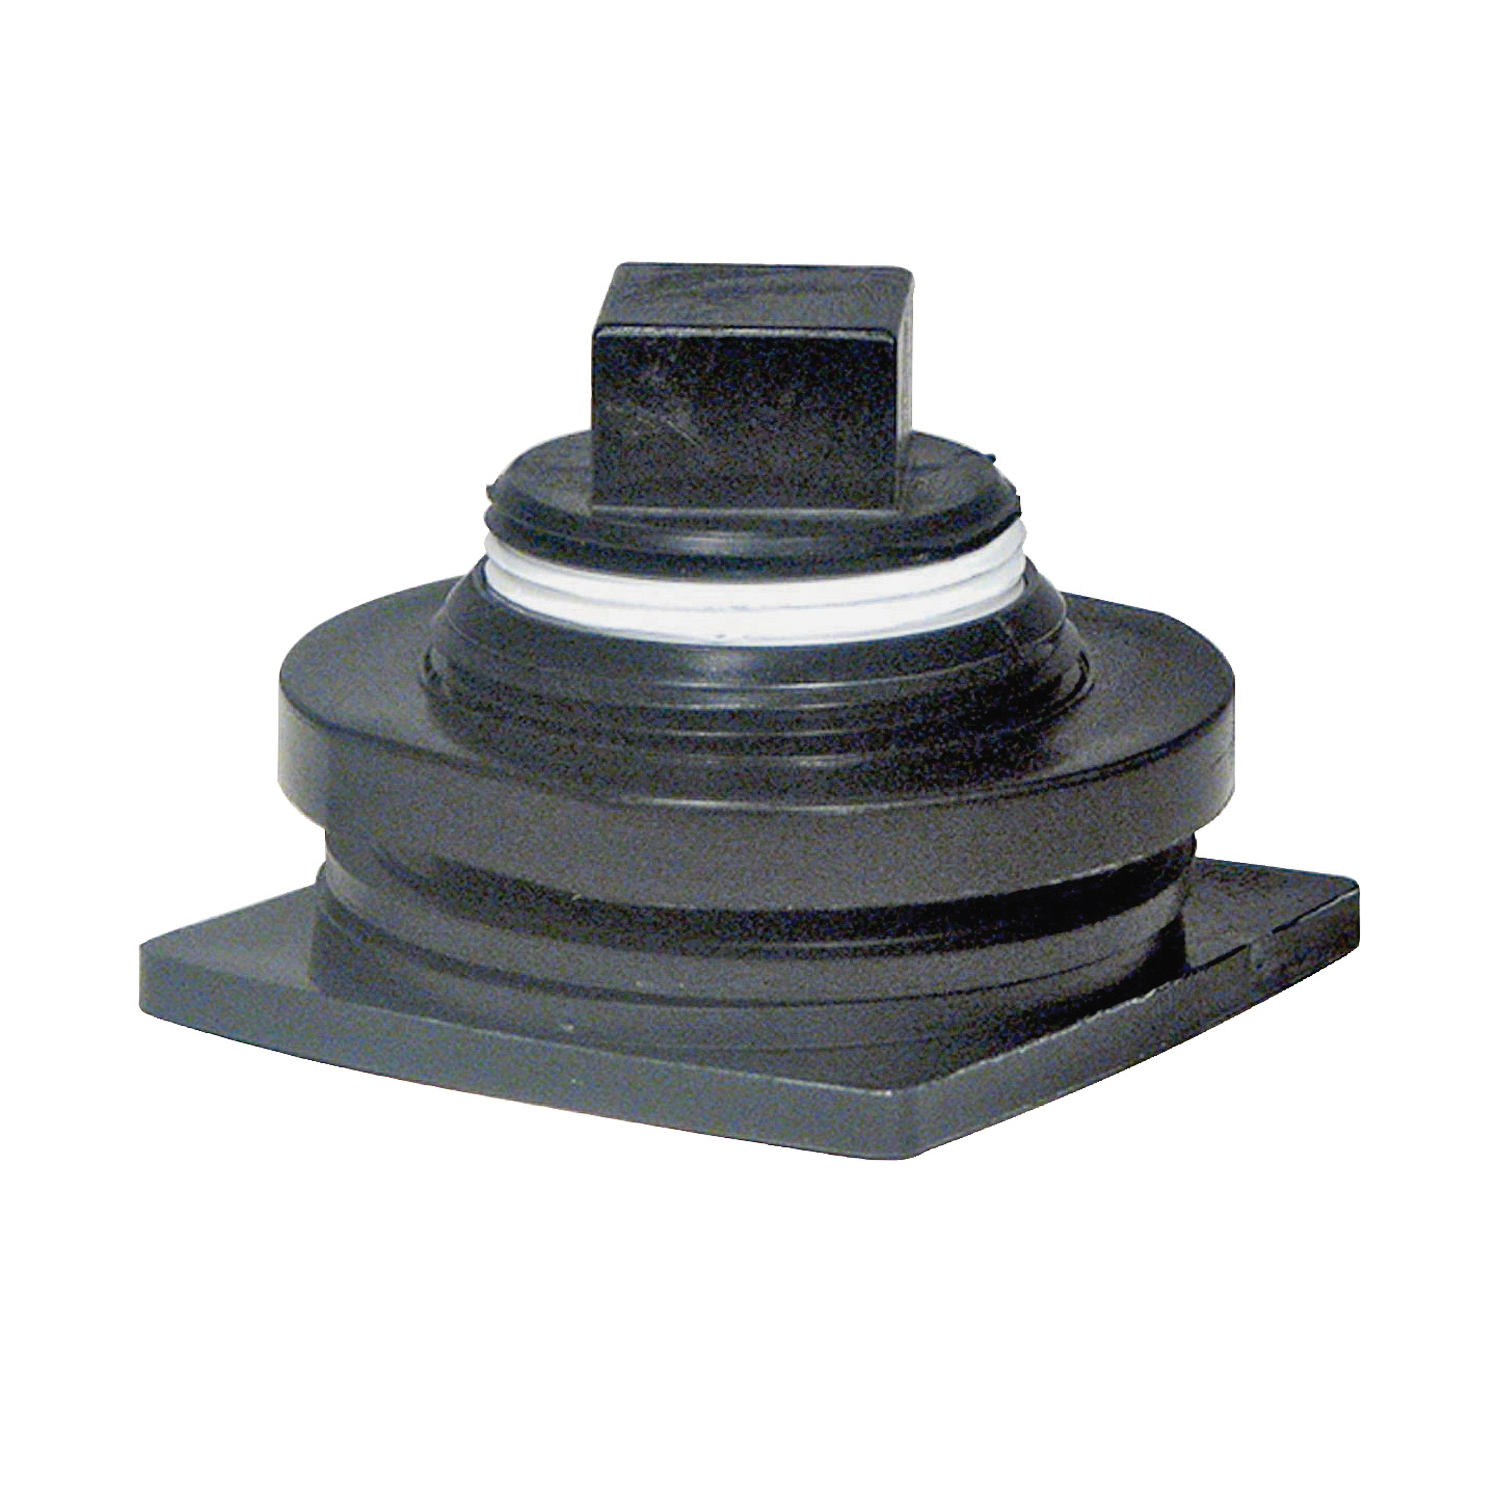 Picture of Rubbermaid 5050-12 Stock Tank Drain Plug Kit, Plastic, For: 4242, 4243, 4244, 4245 and 4247 Stock Tank